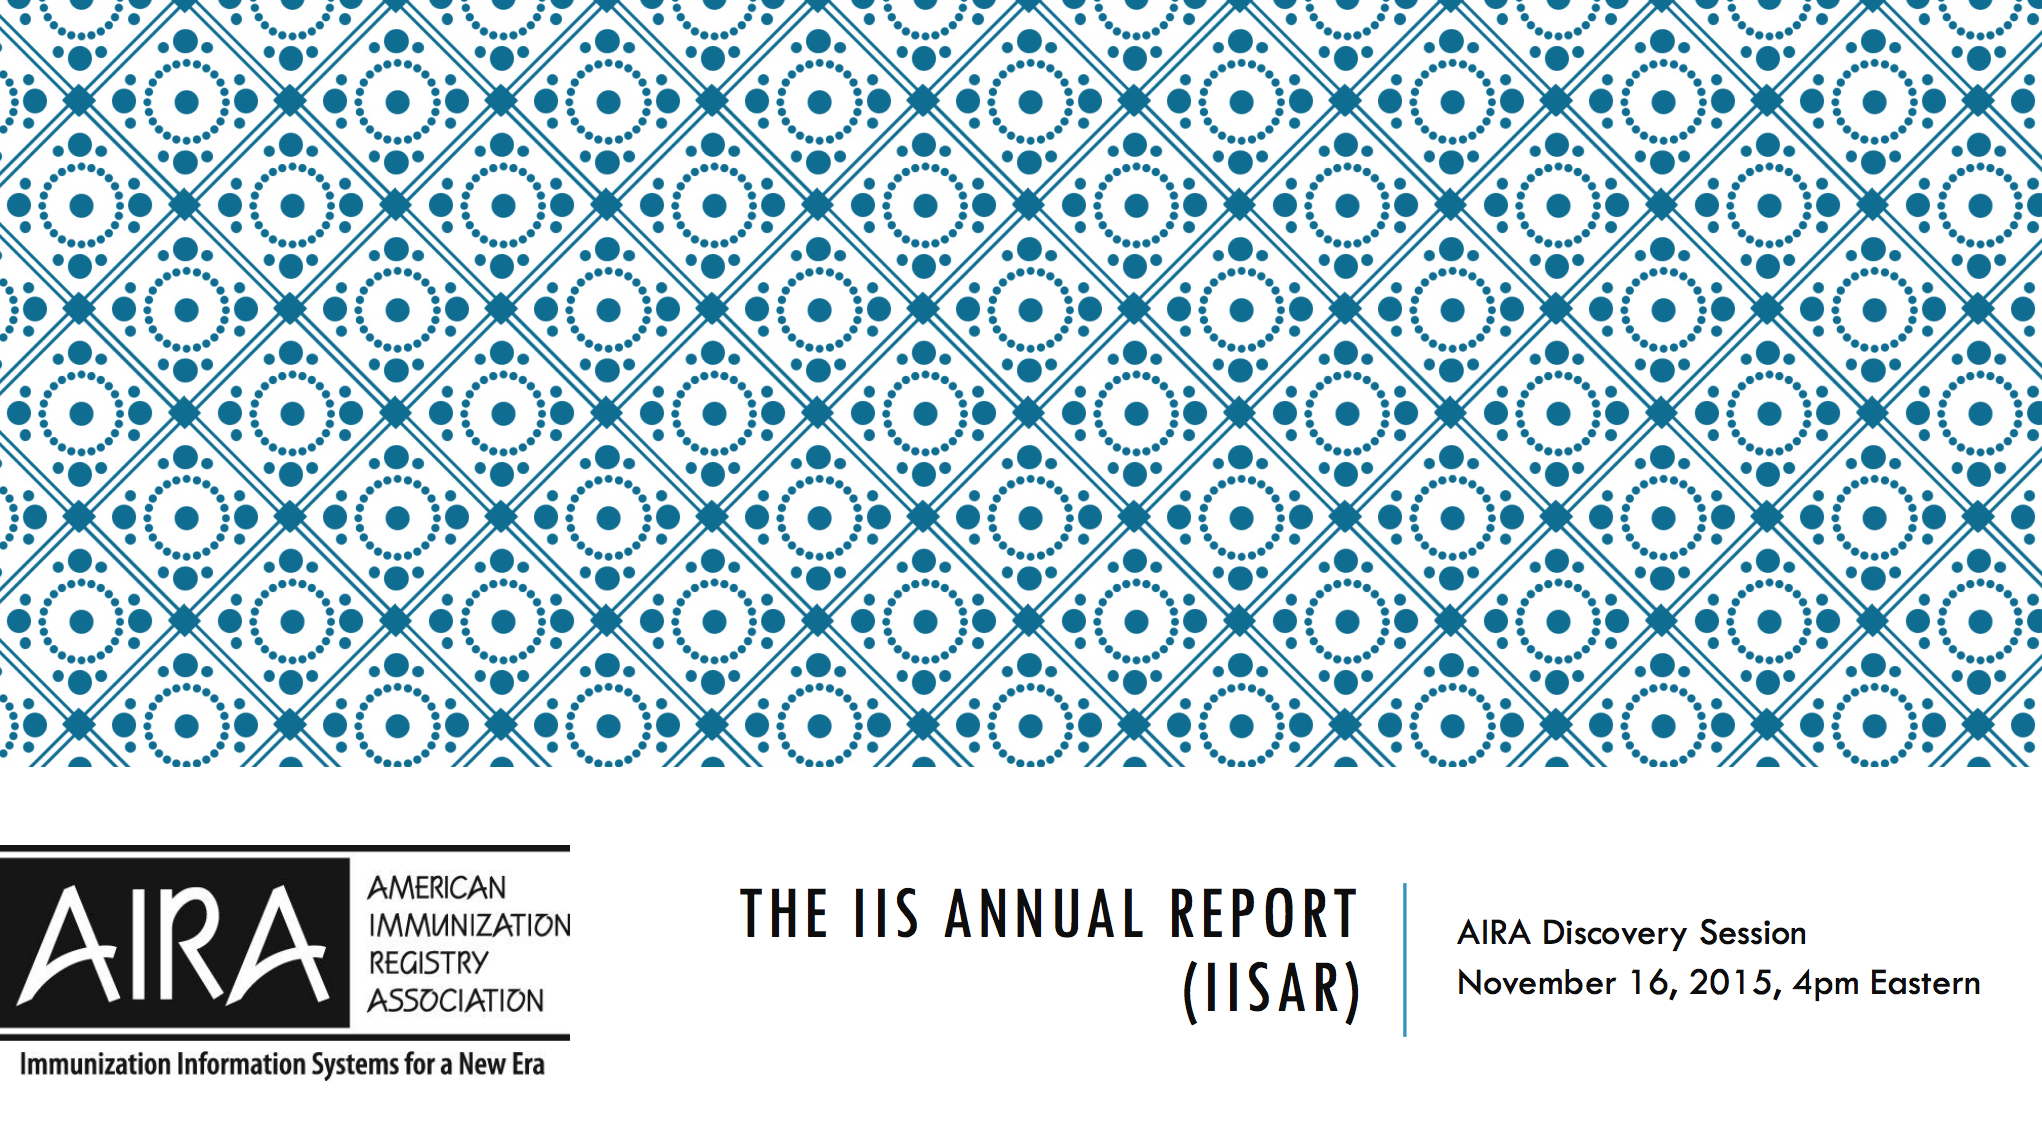 AIRA Discovery Session: 2016 IIS Annual Report